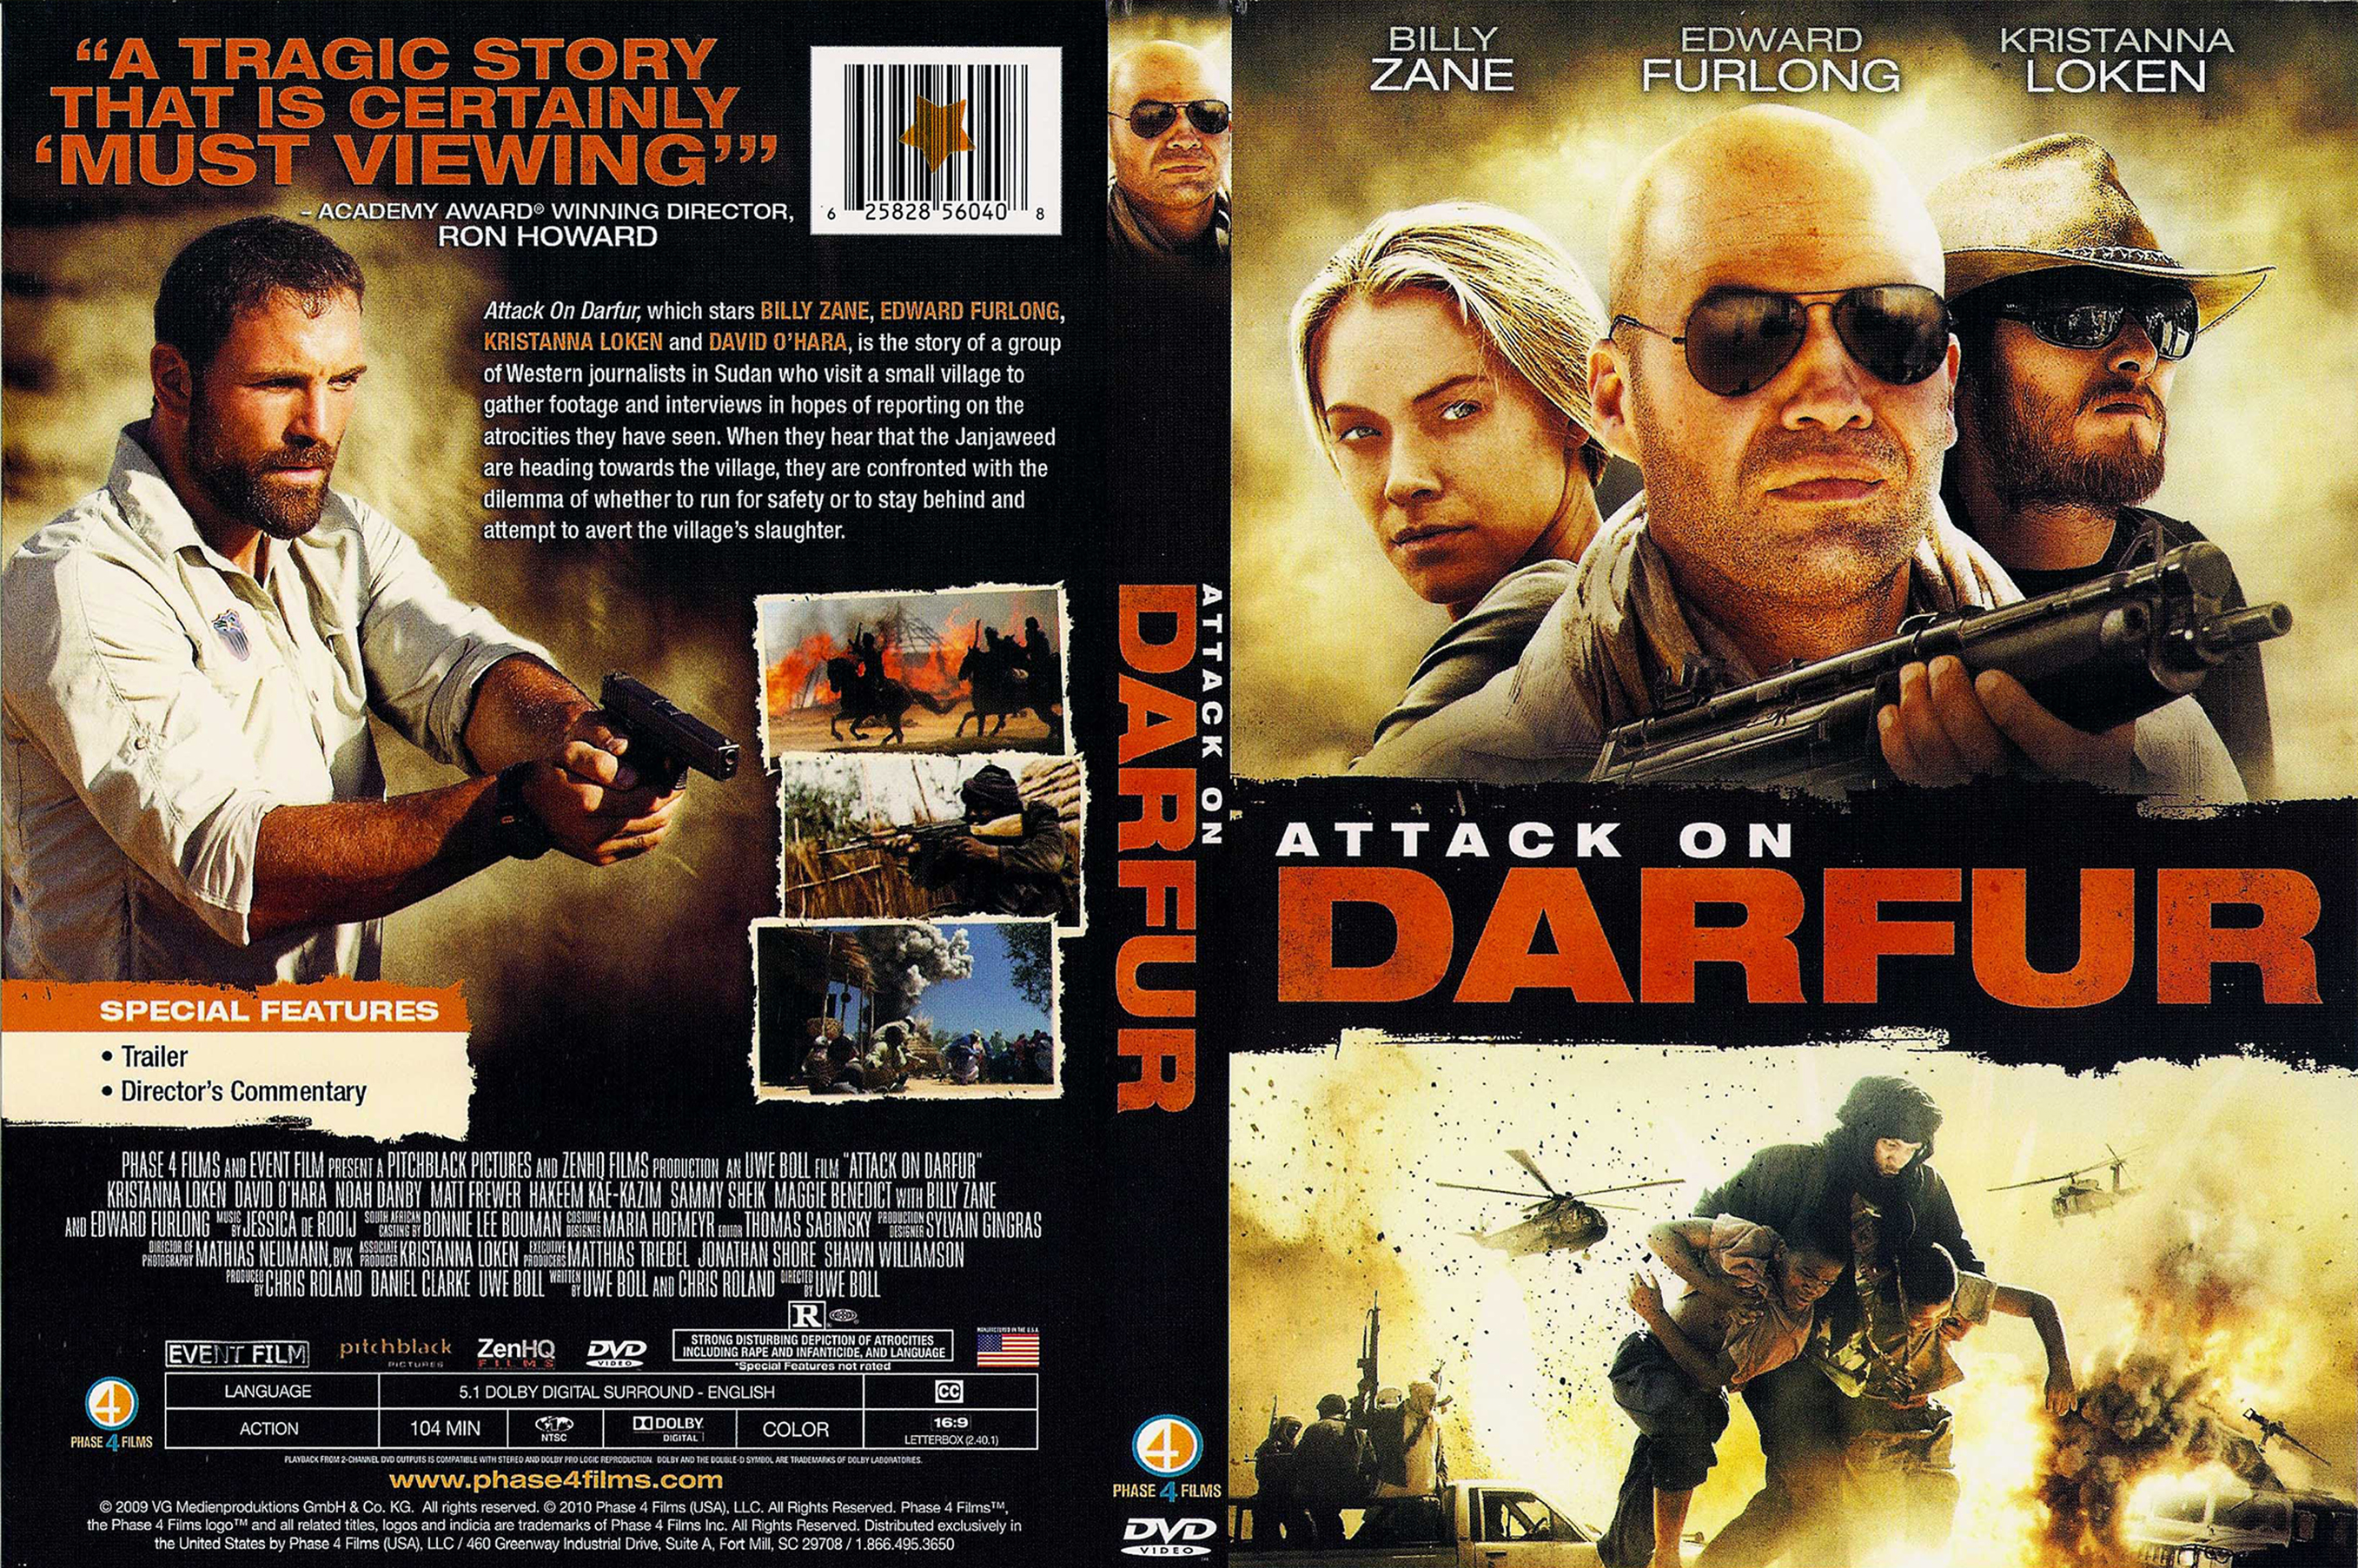 Download attack on darfur (2009) yify torrent for 720p mp4 movie.